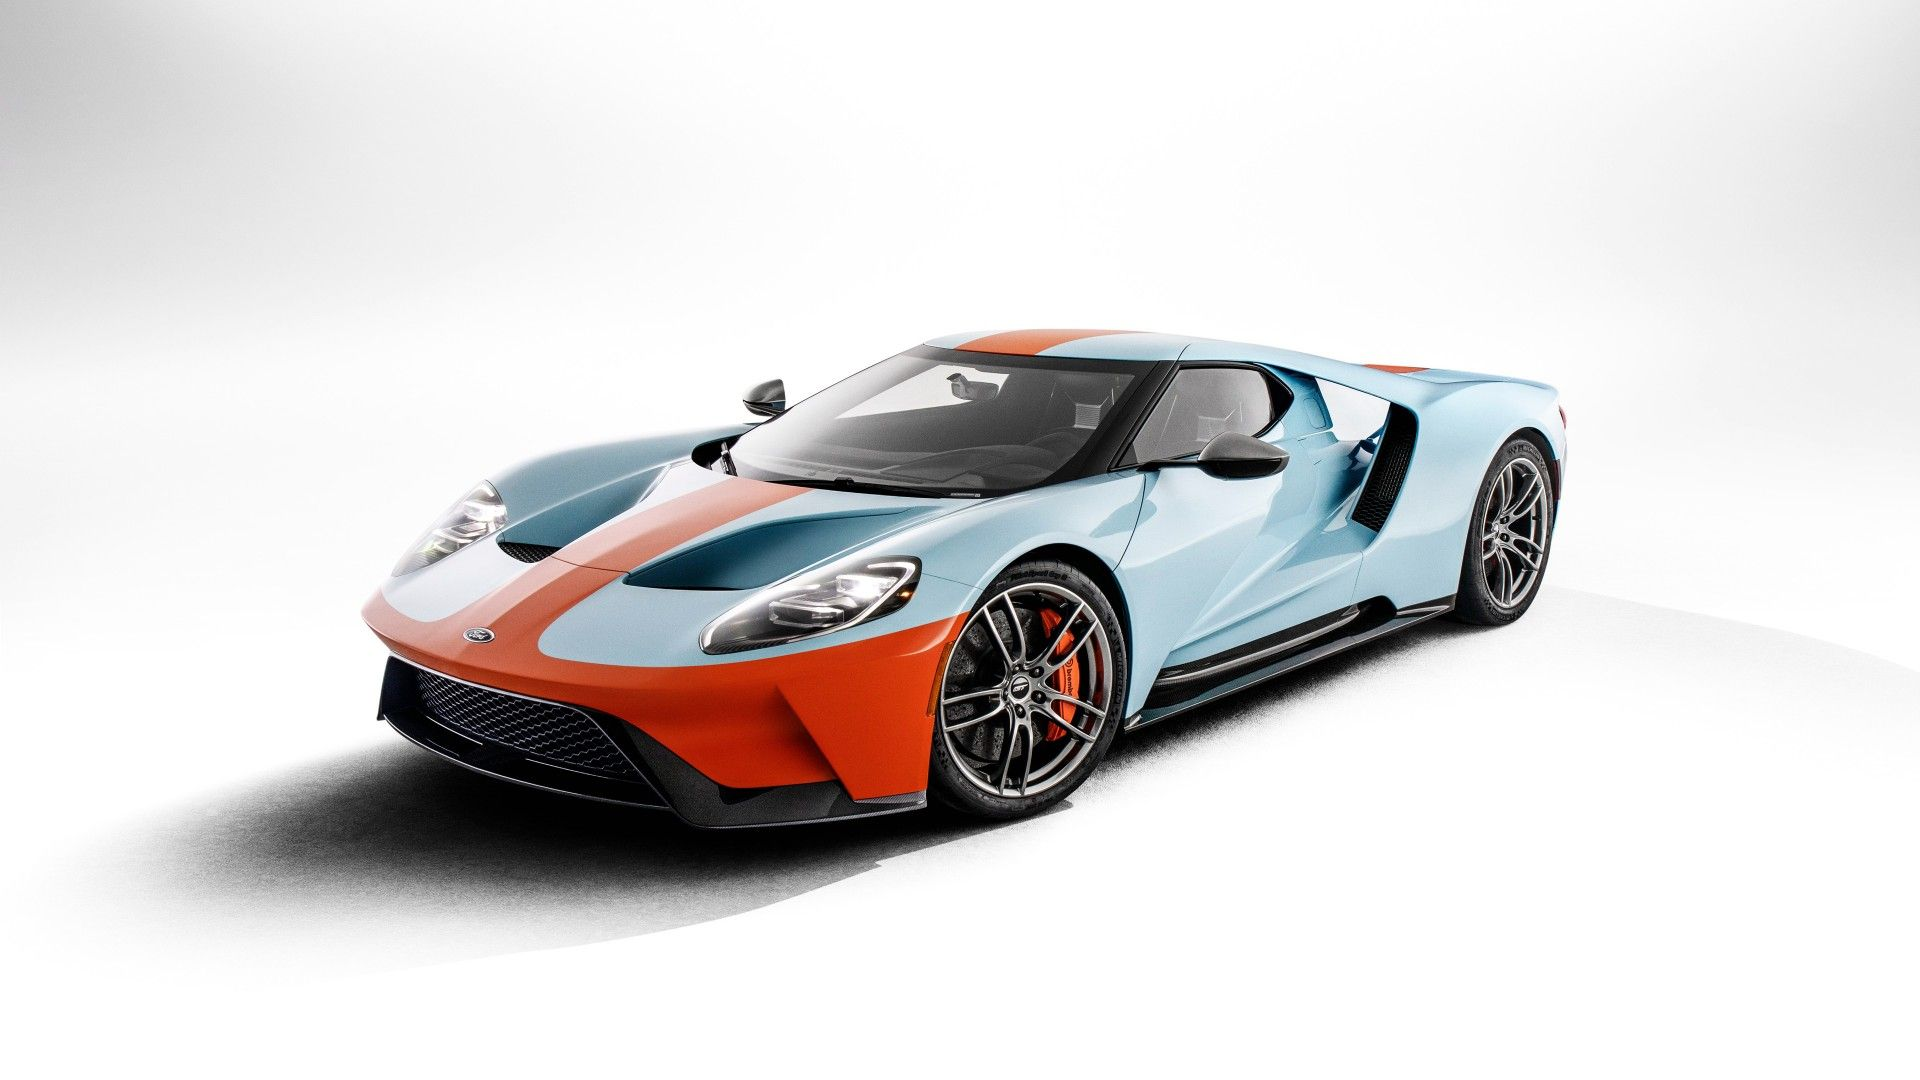 Ford Gt 2019 Wallpaper Wallpapers 2020 Ford Gt Ford Gt Gulf Ford